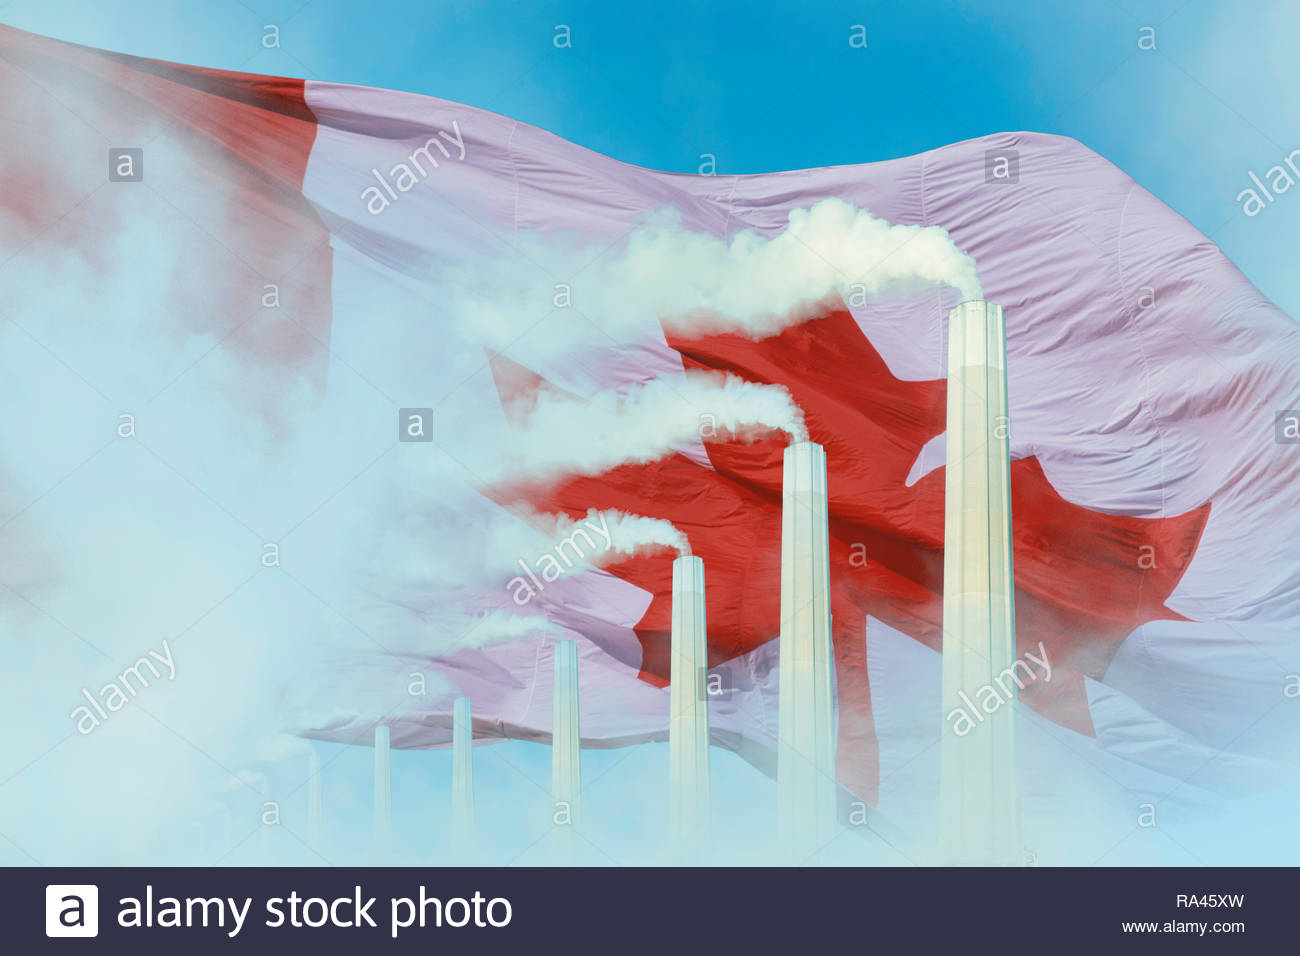 Global warming Climate change  Canadian flag smoke greenhouse gas chimney. - Stock Image